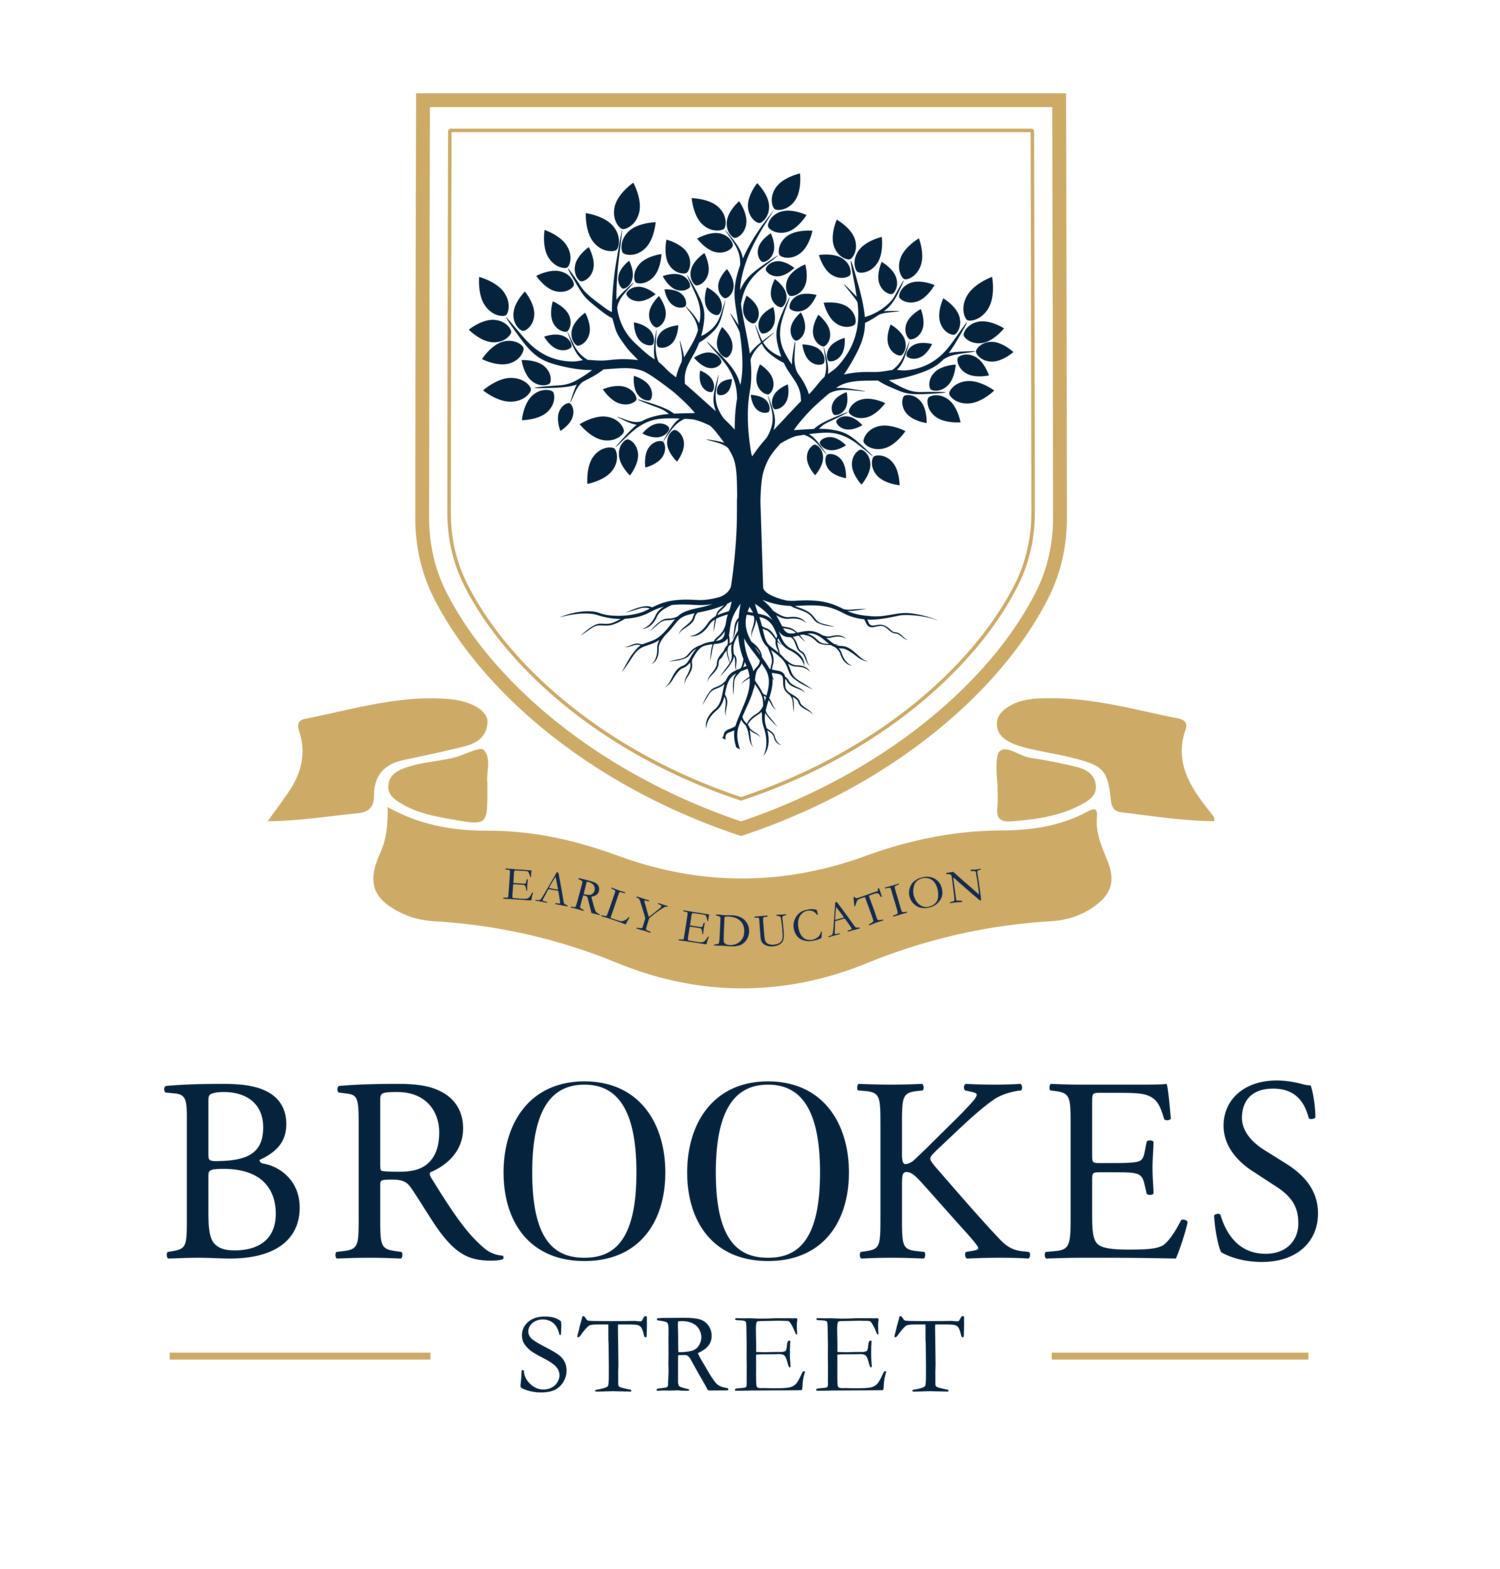 Brookes Street Early Education